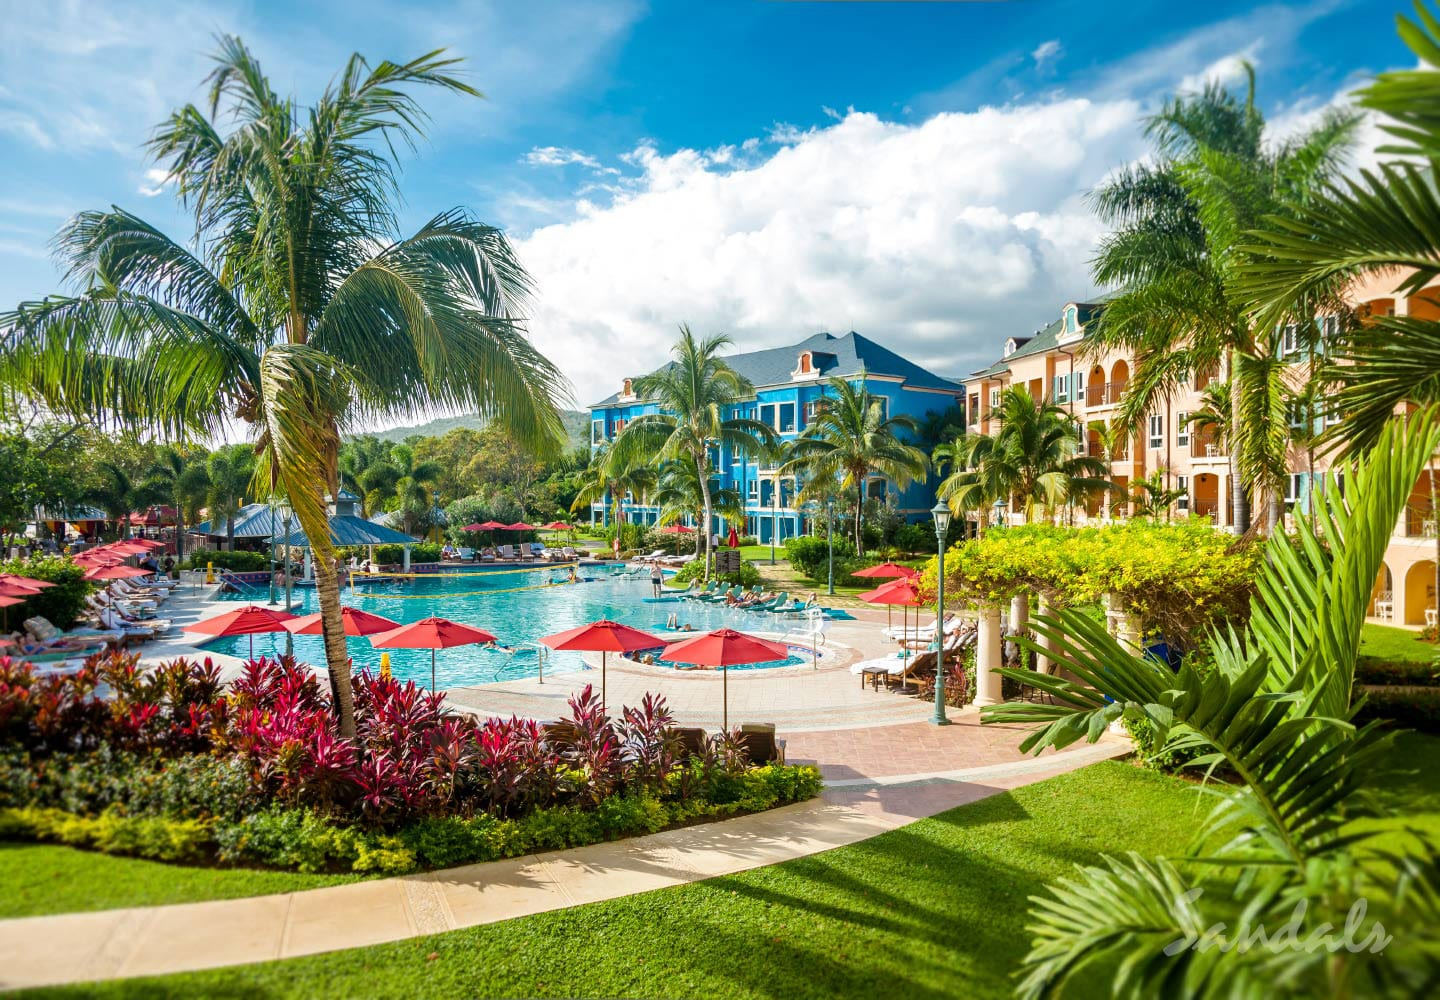 Sandals South Coast, former Sandals Whitehouse, resort in Jamaica, all inclusive adults only vacation packages